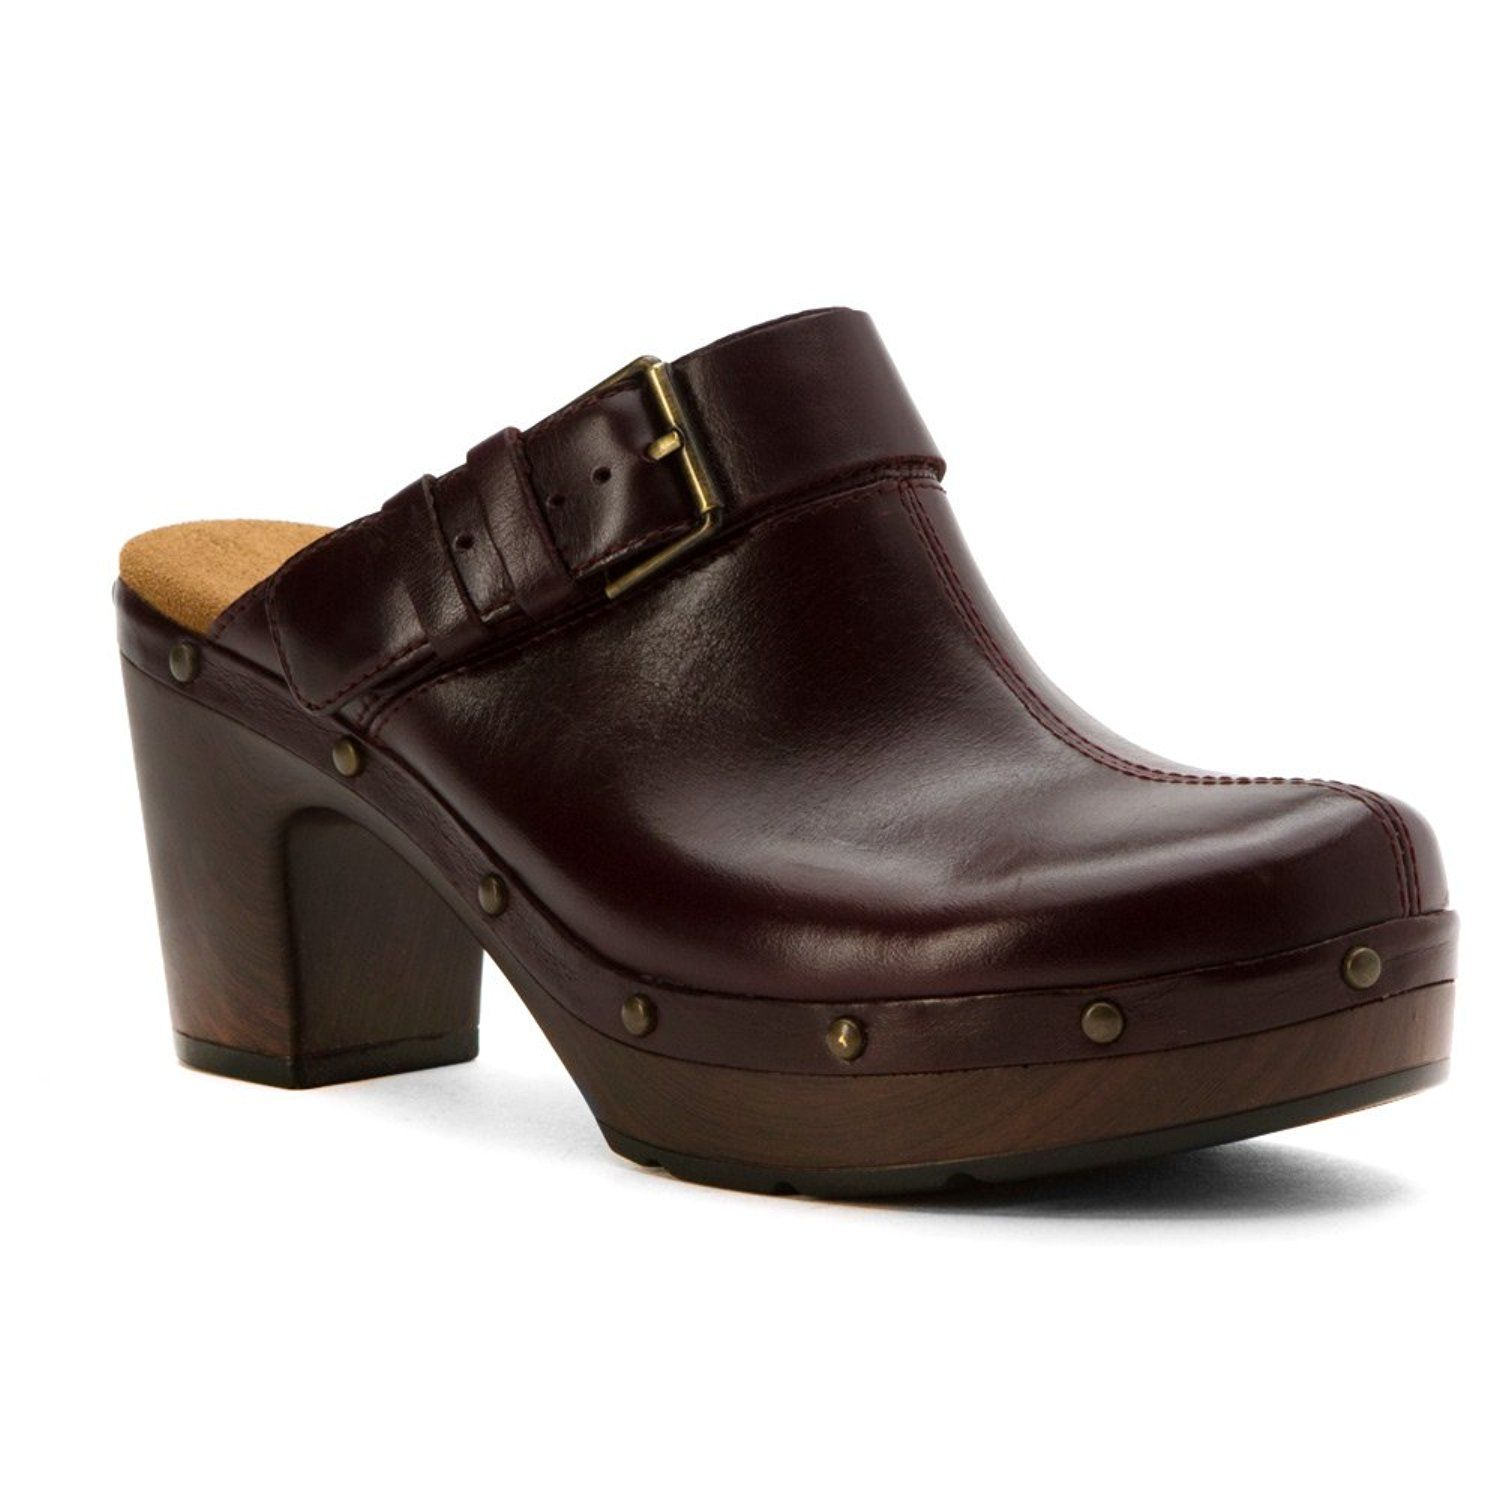 c164d4cdebeb Clarks Women s Ledella York Clogs And Mules Shoes -- Continue to the  product at the